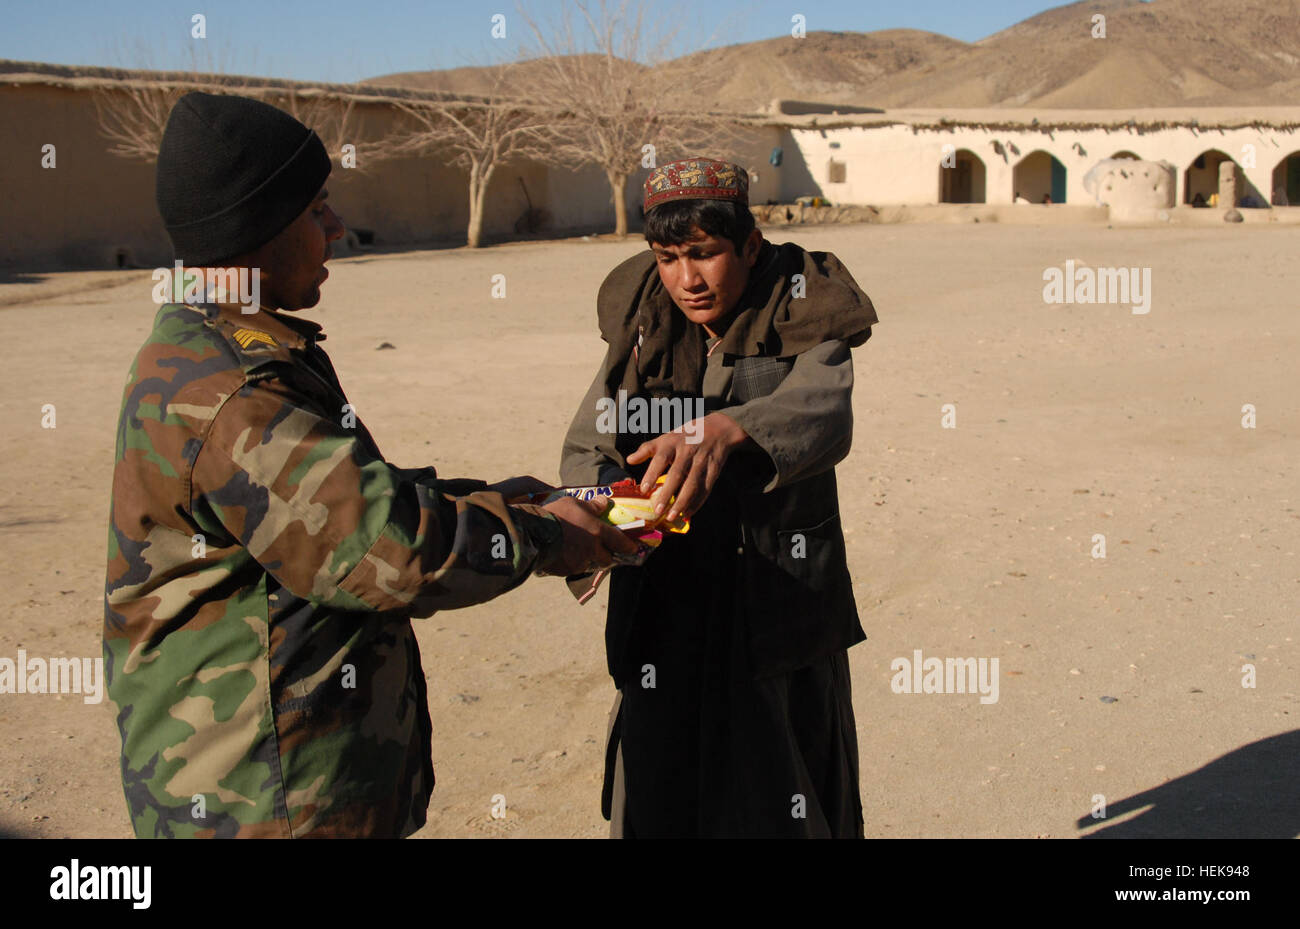 An Afghan Commando from 2nd Company, 3rd Commando Kandak, hands candy he bought from a local shop to a child during - Stock Image